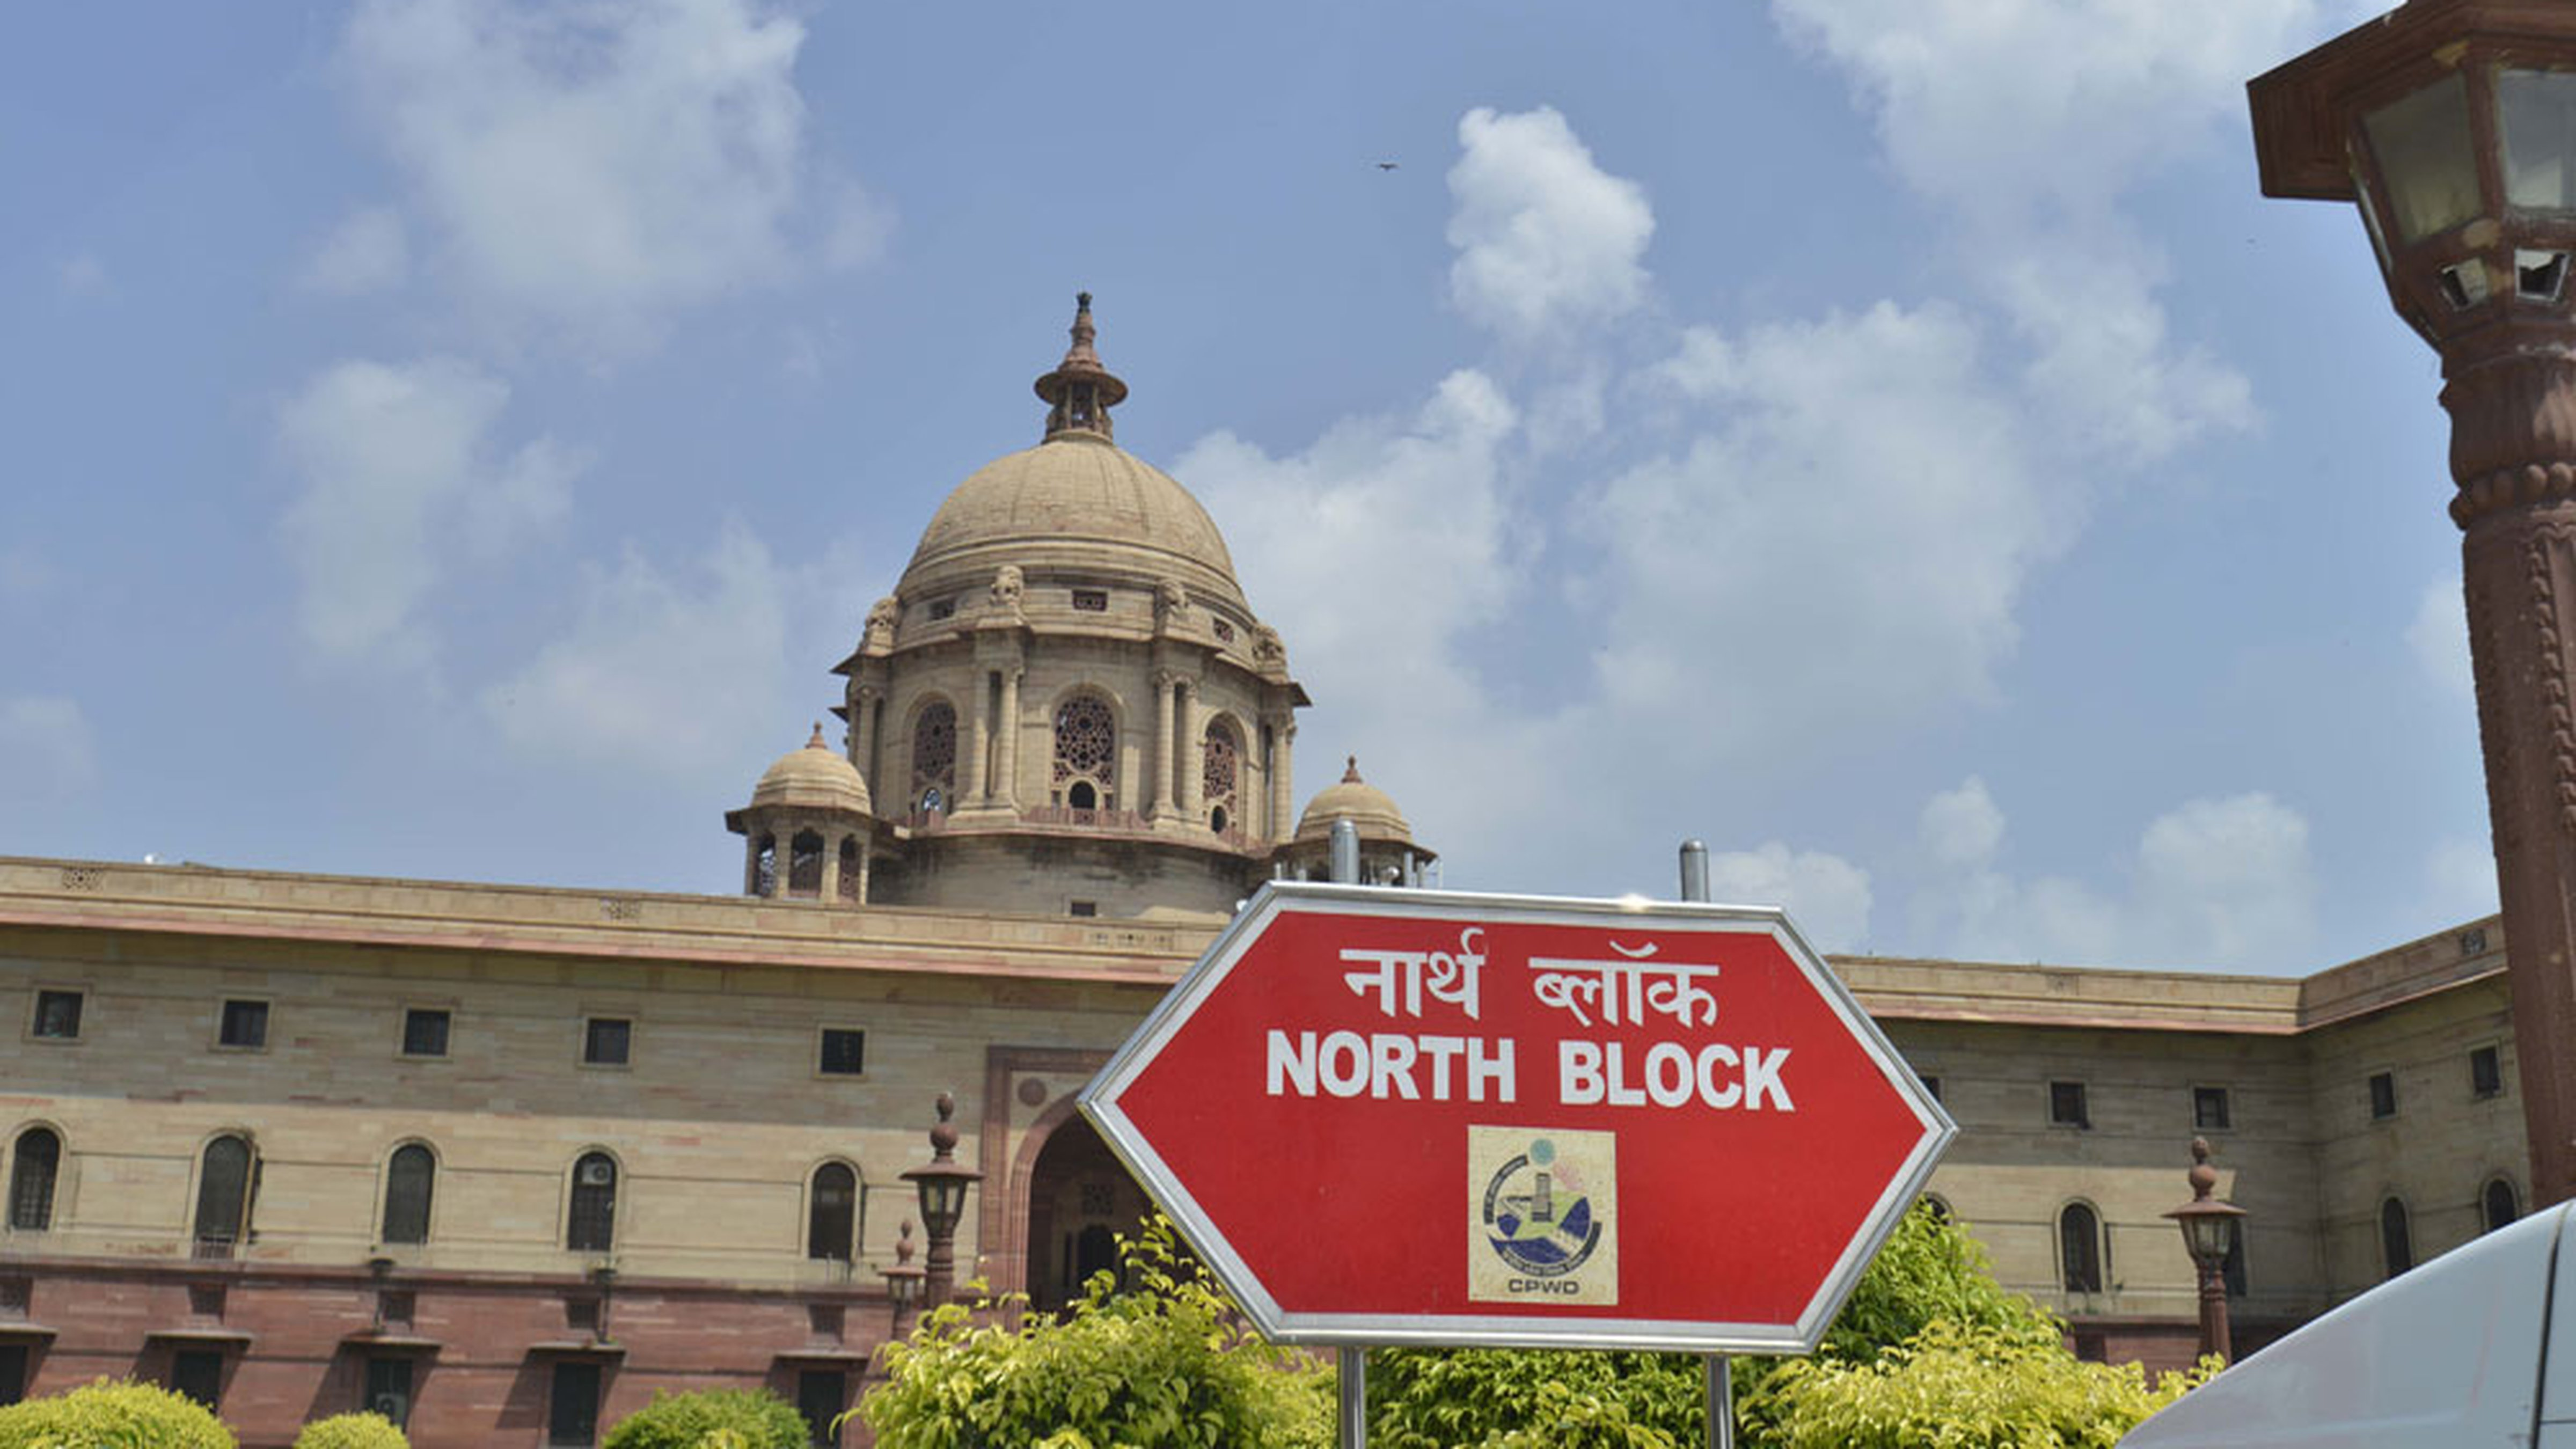 North Block will infuse some Rs 48,239 crore in a dozen public sector banks to give them the minimum funds they need to improve their capital buffer and possibly come out of the Reserve Bank of India's list of weak banks.